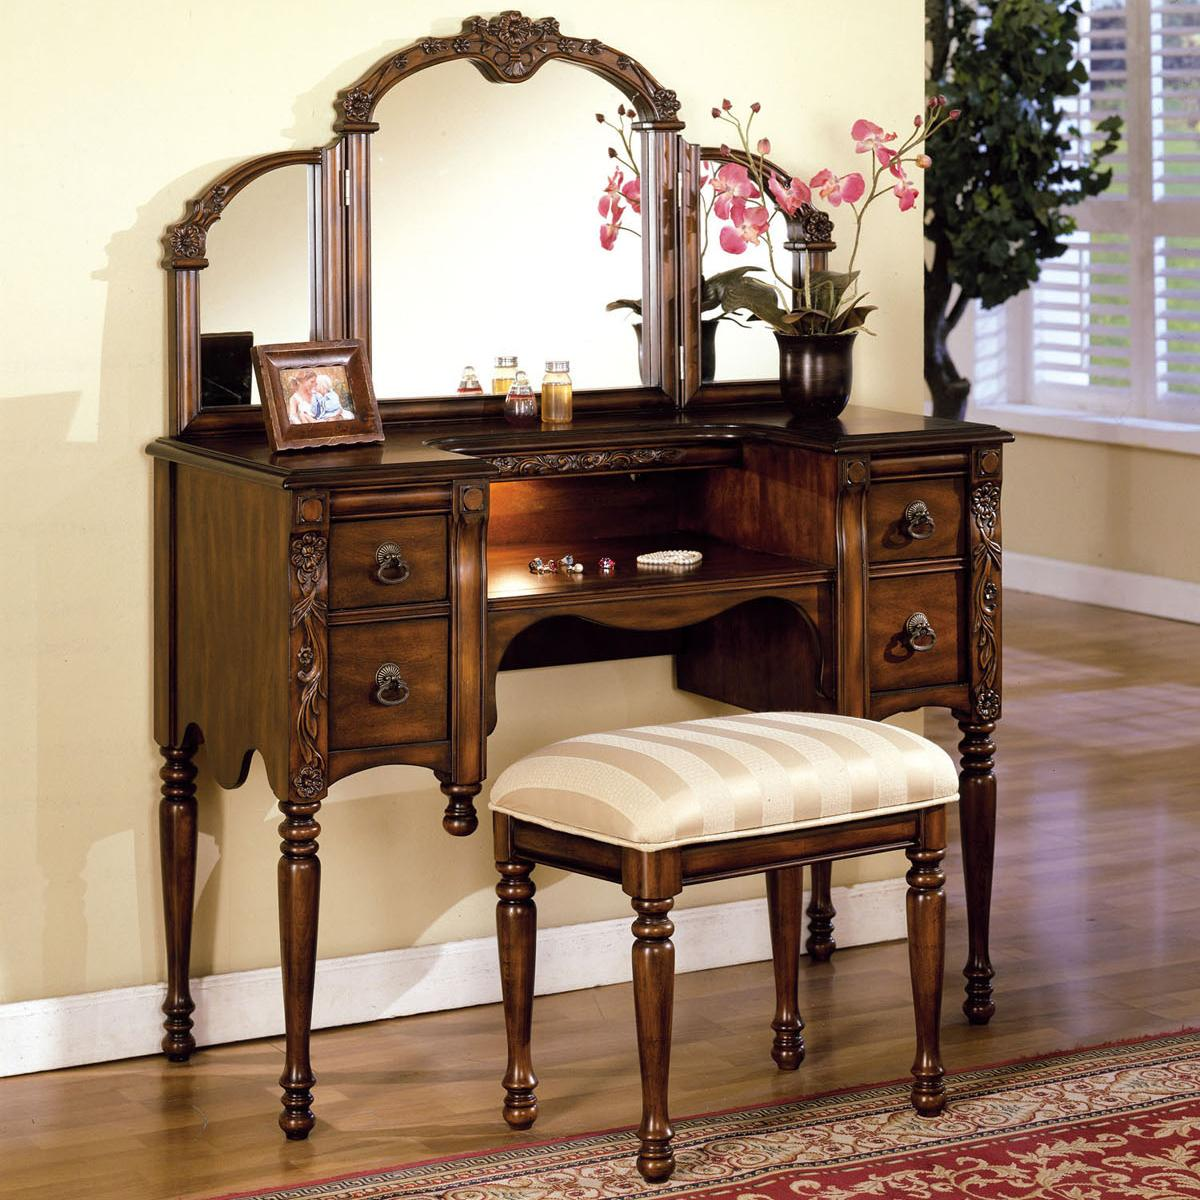 Acme furniture ashton vanity table stool and mirror set for Vanity mirror and desk